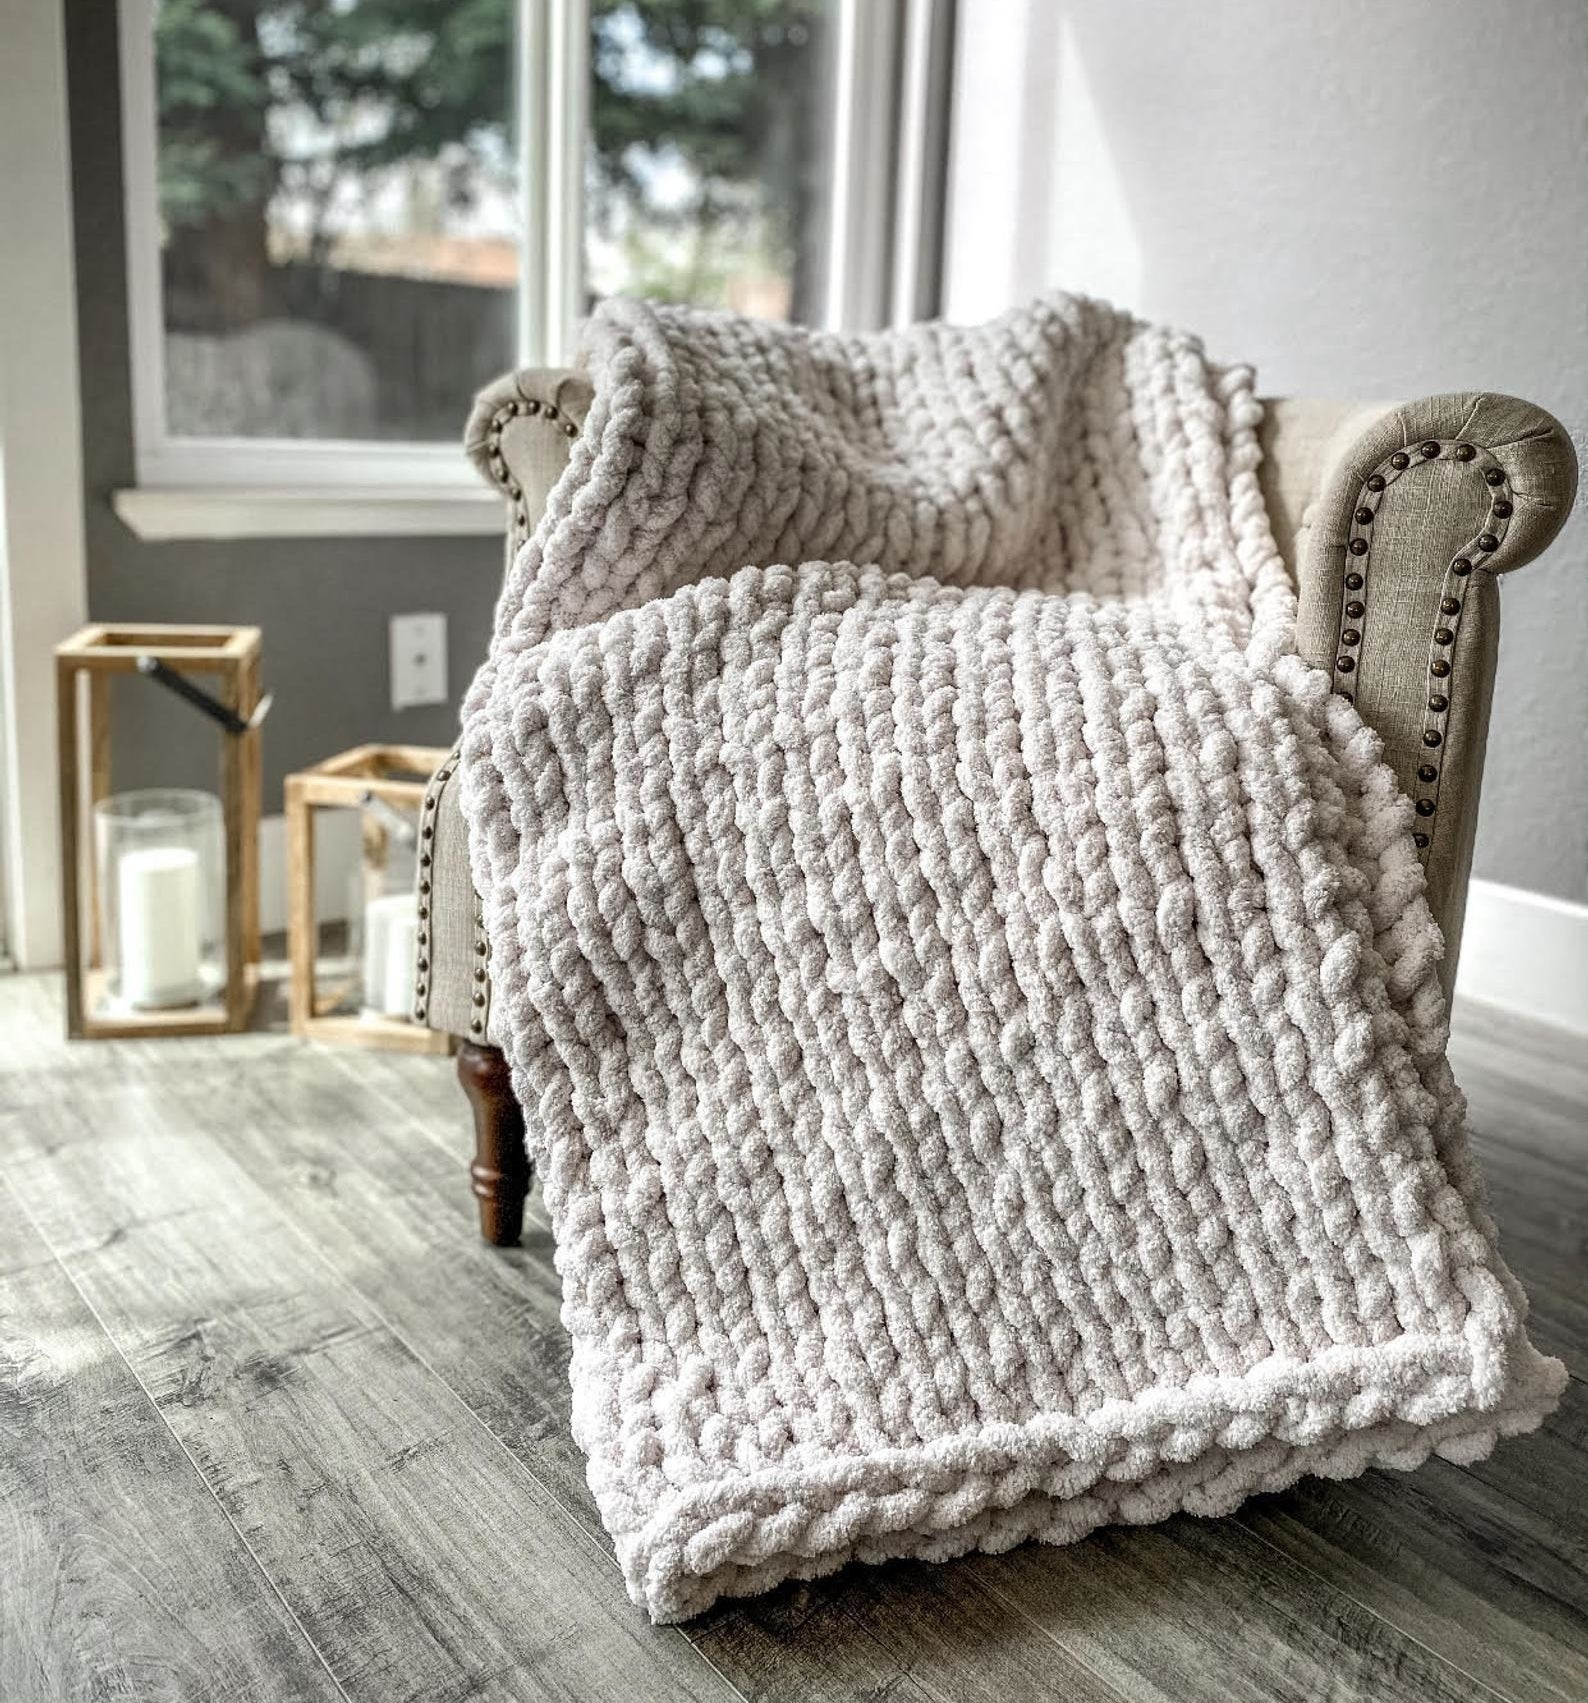 The chunky knit blanket in a cream color